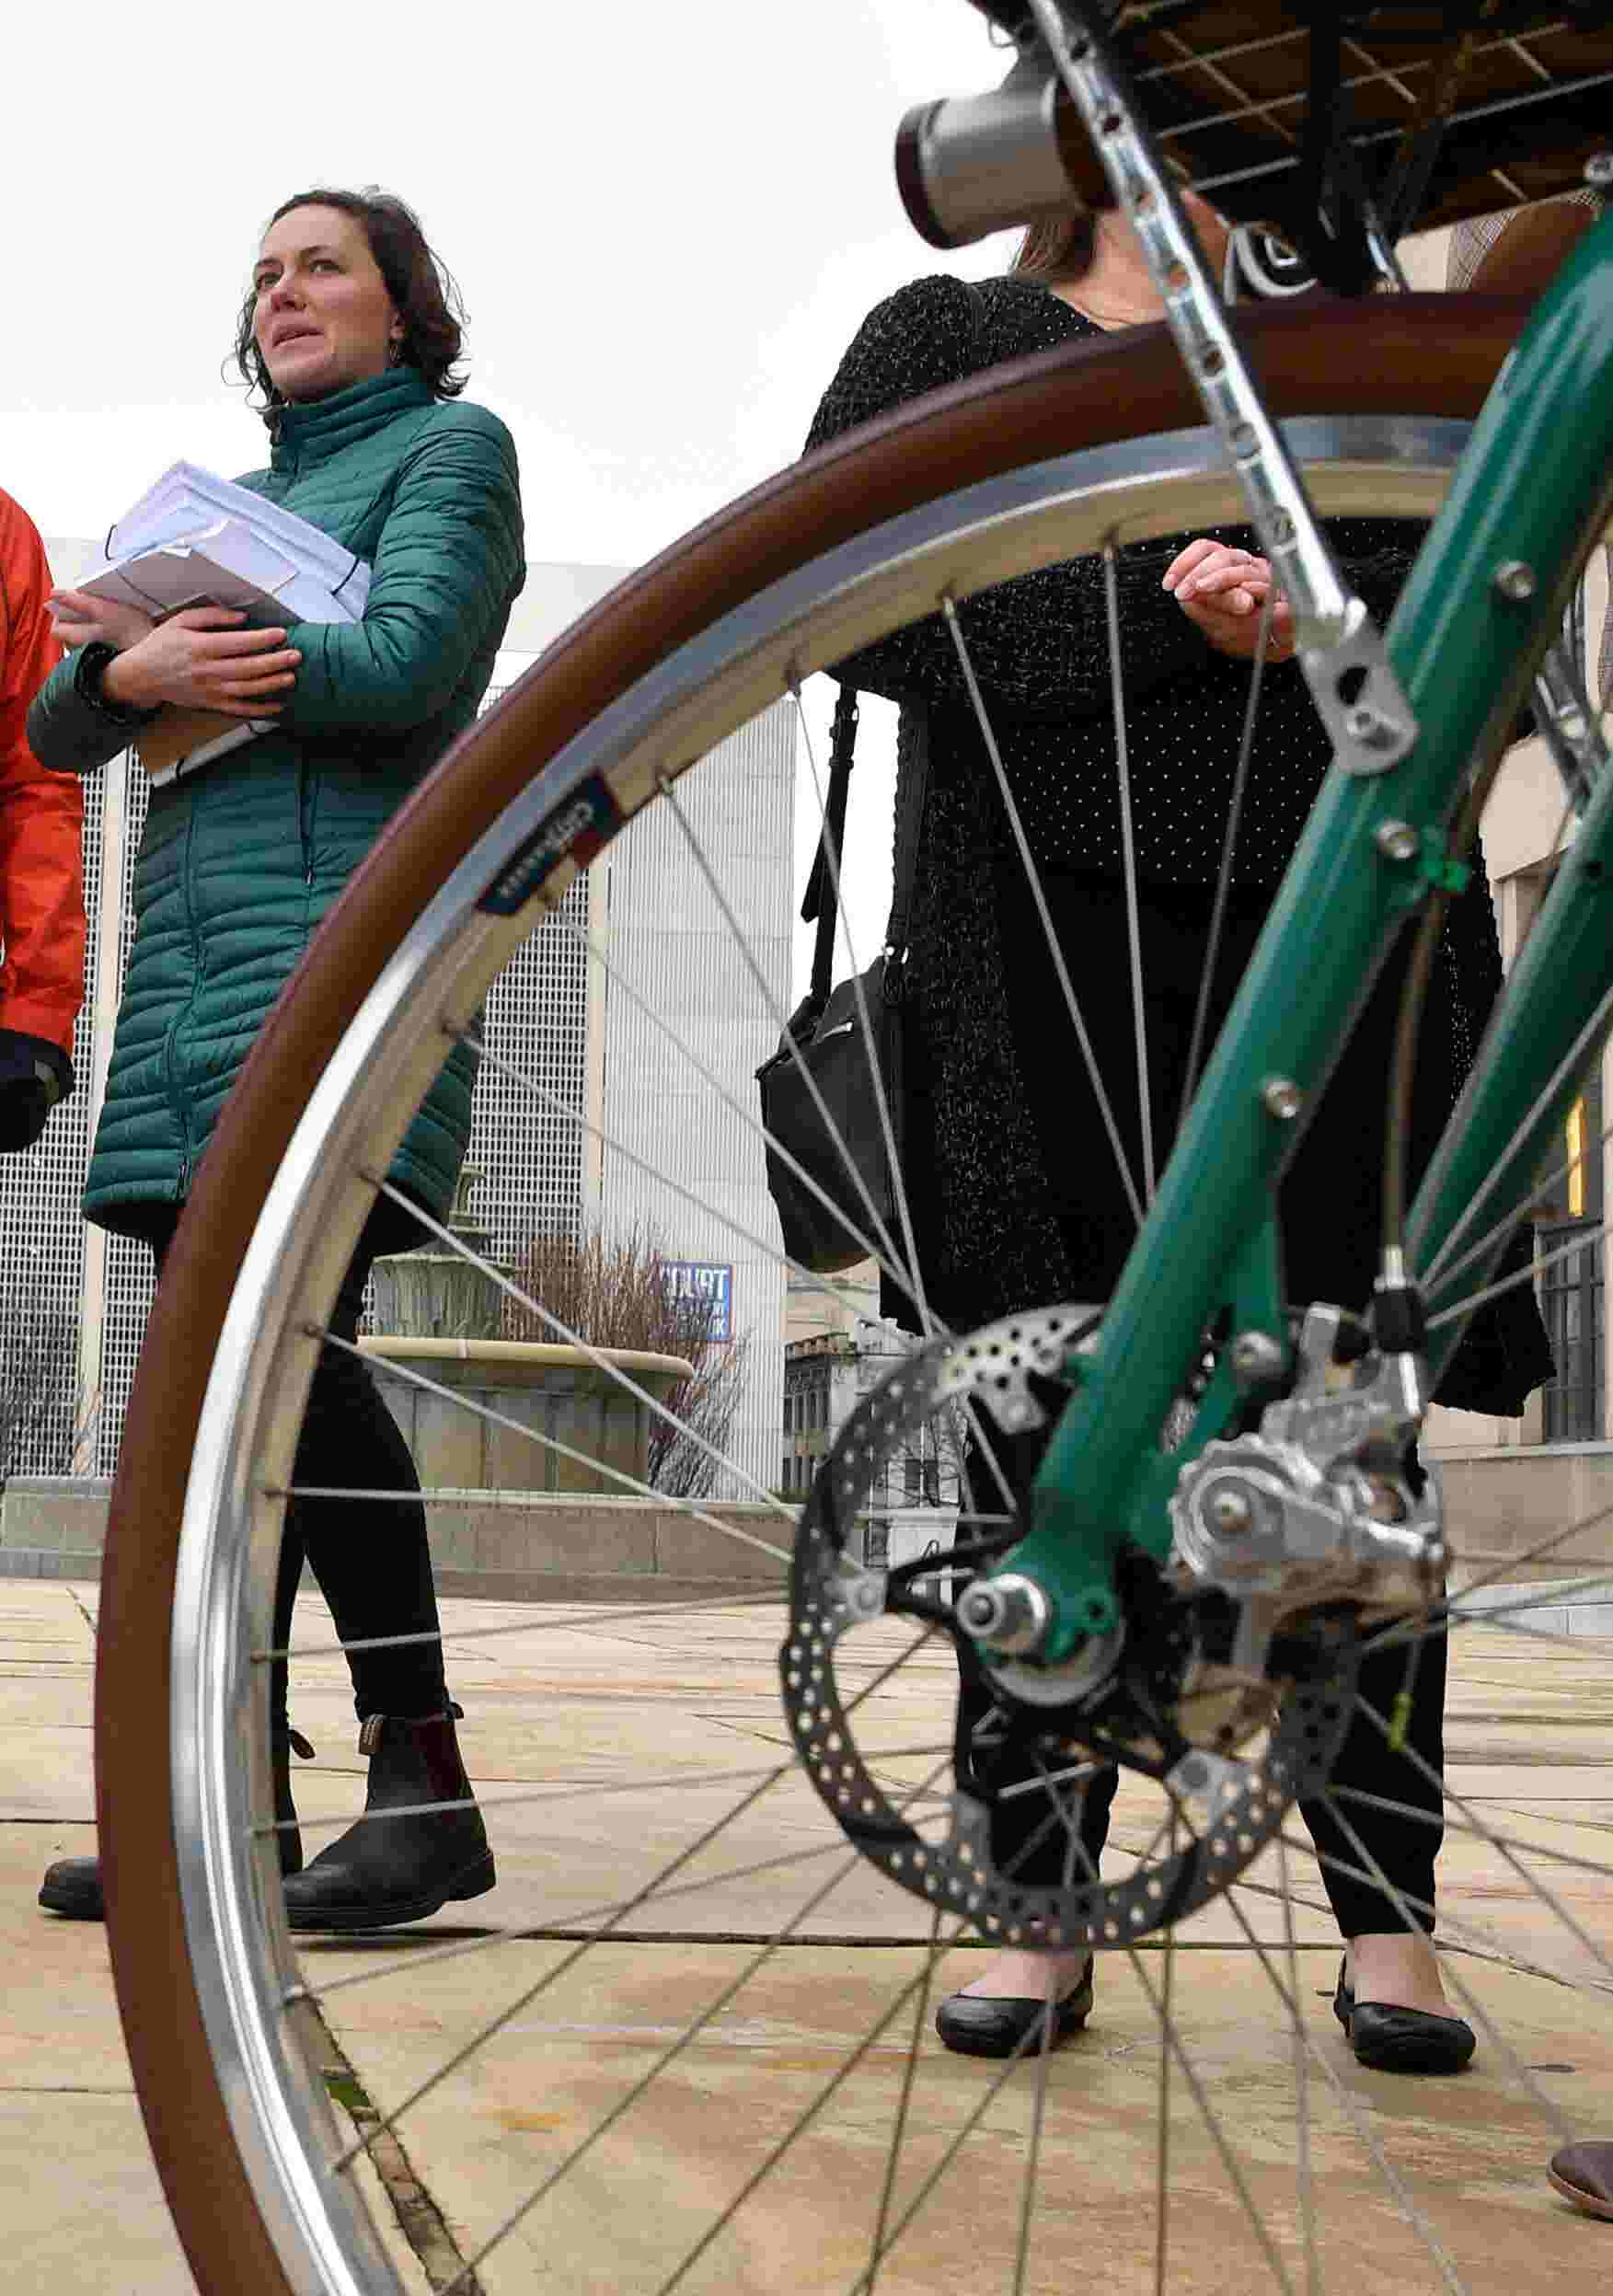 Advocates call for more protected bike lanes in Nashville